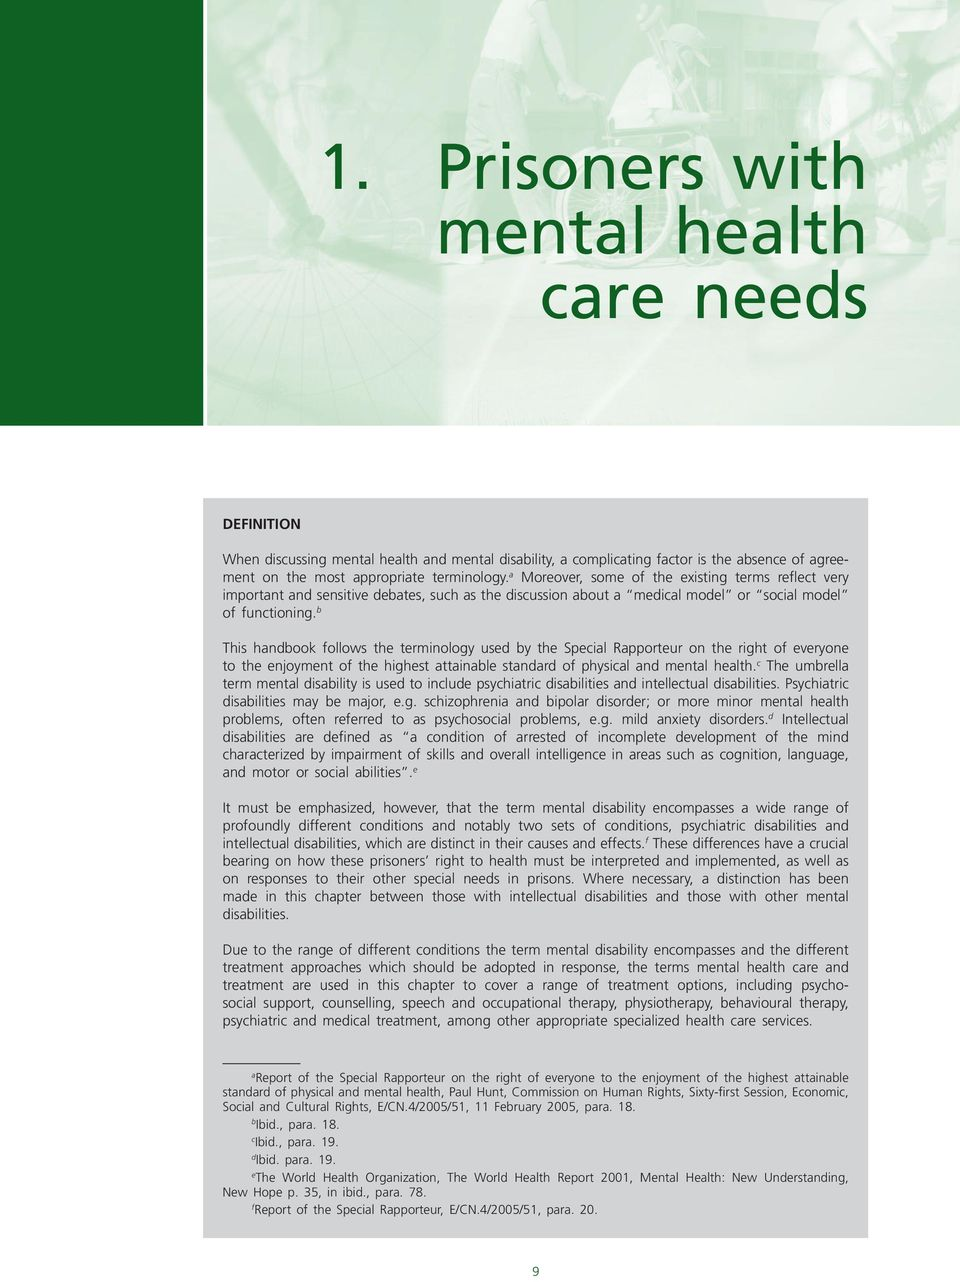 b This handbook follows the terminology used by the Special Rapporteur on the right of everyone to the enjoyment of the highest attainable standard of physical and mental health.